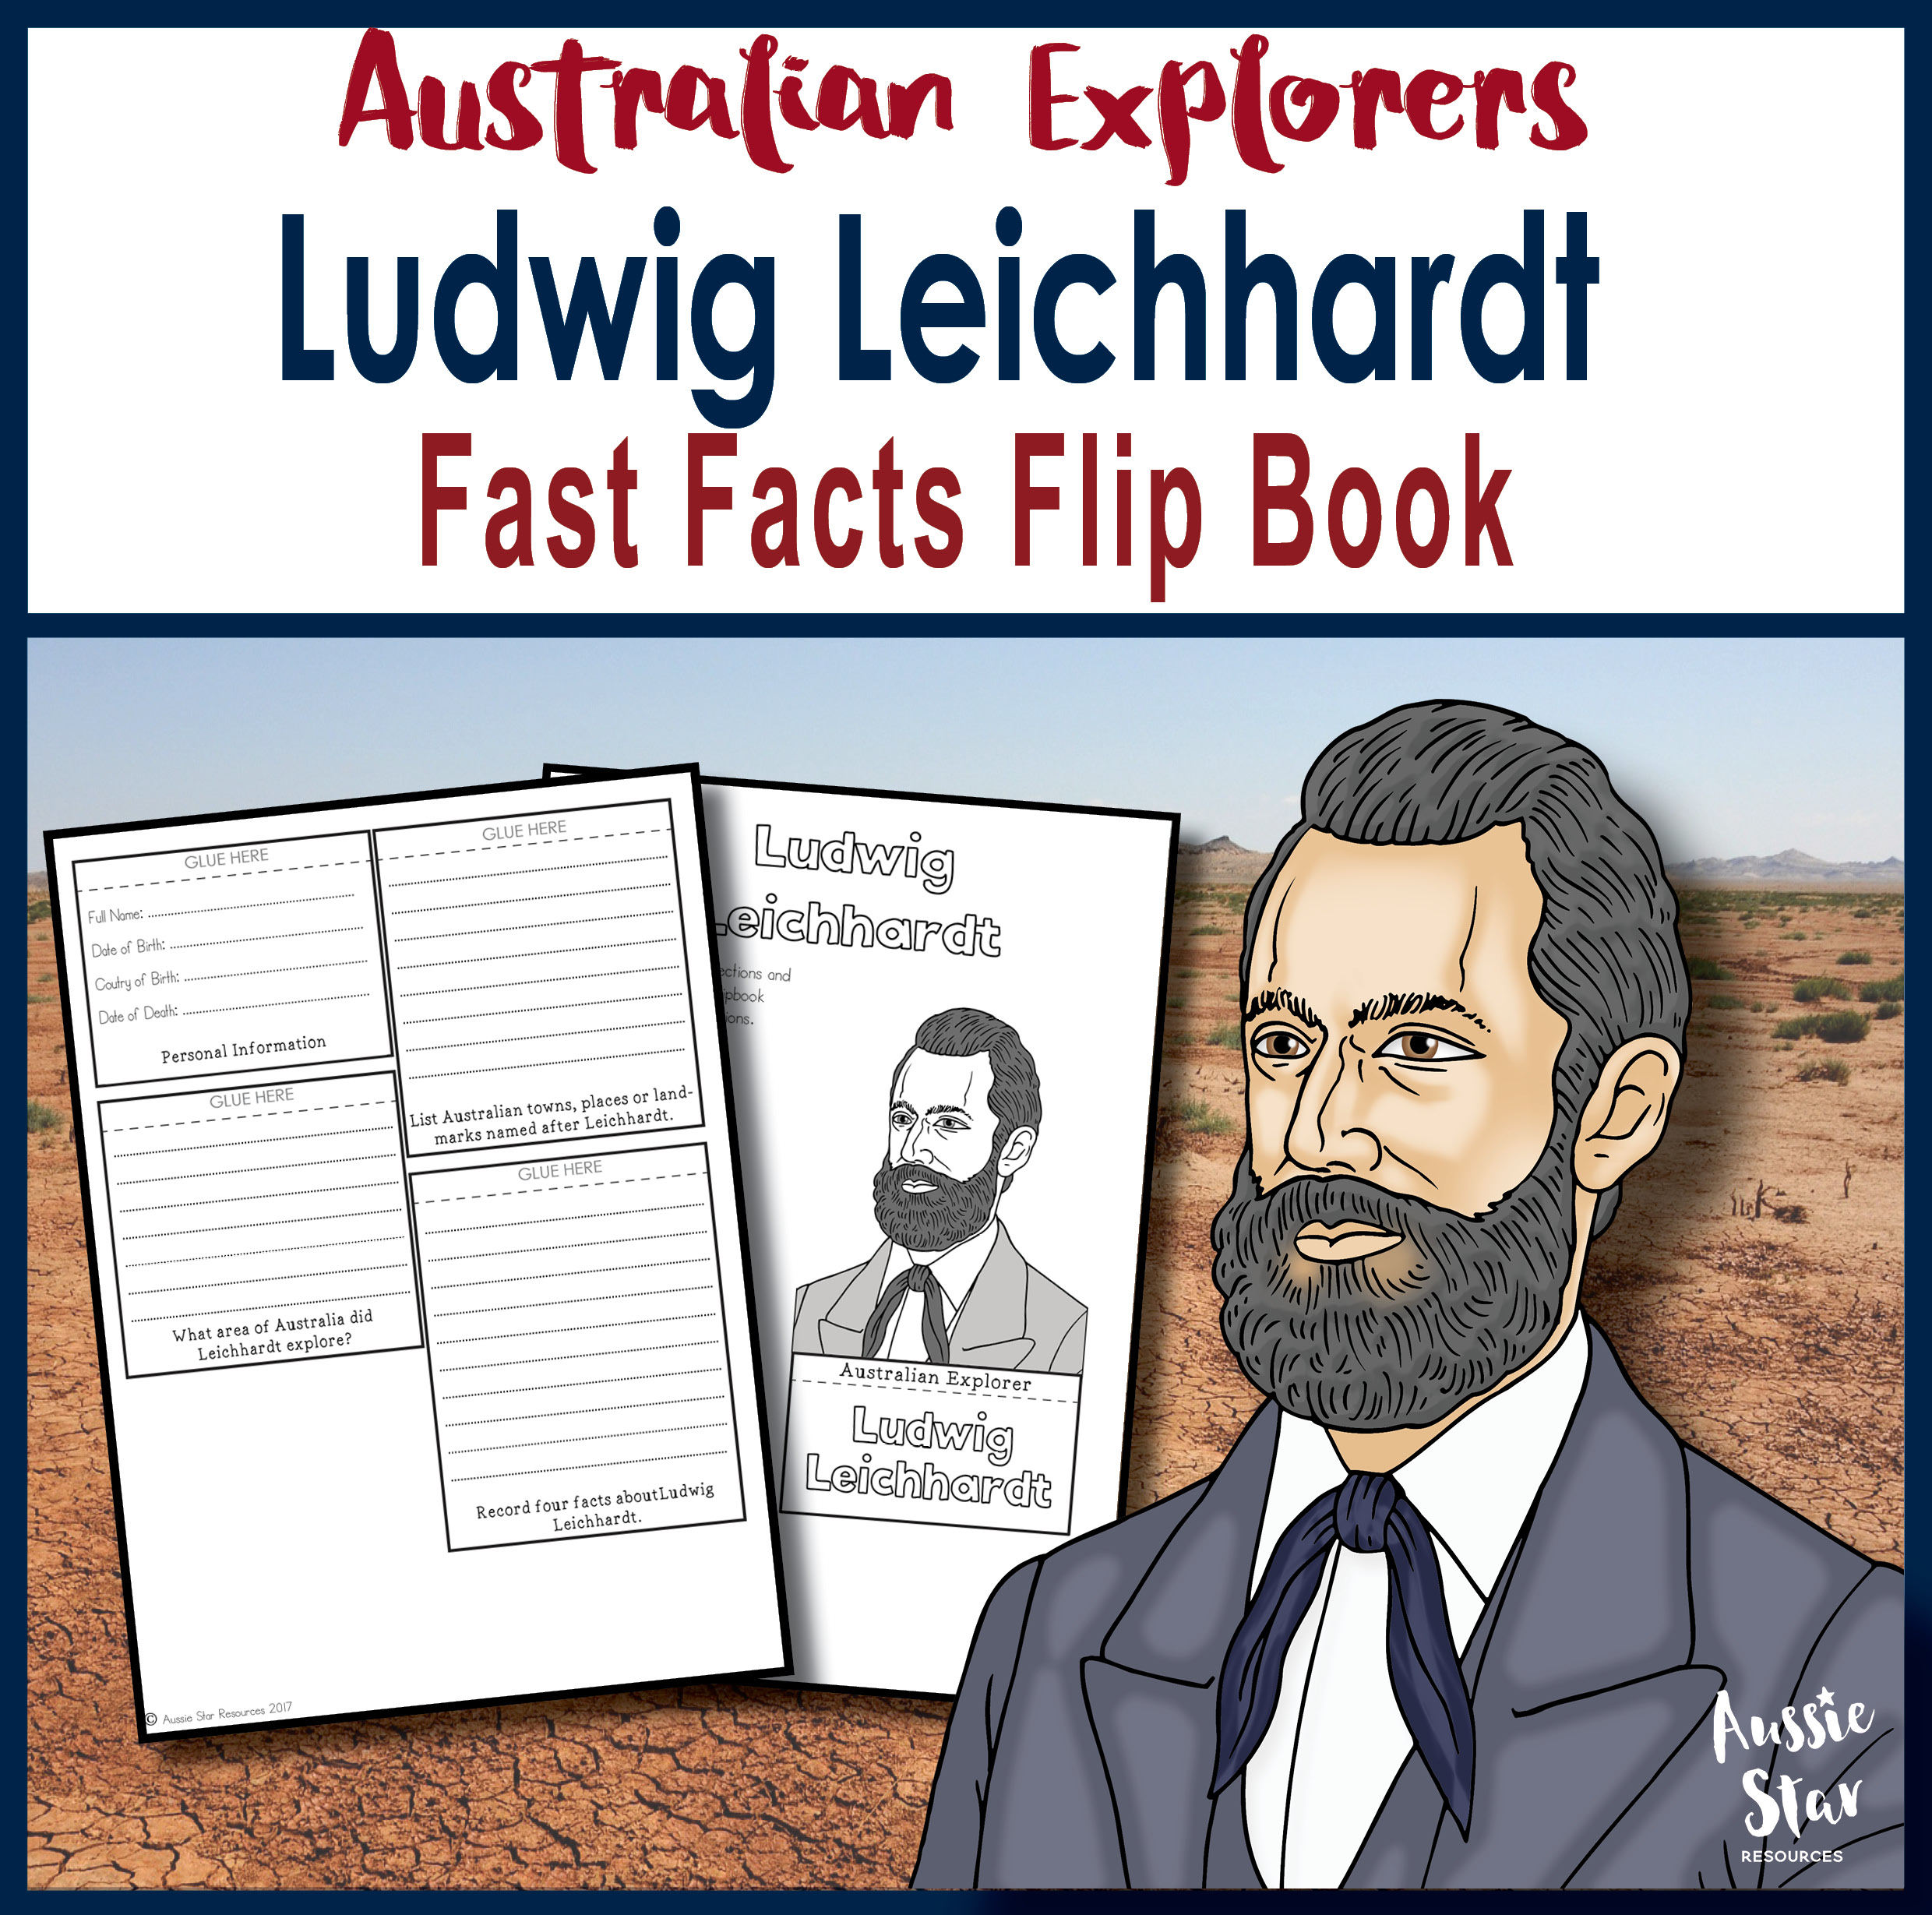 Ludwig Leichhardt Fast Facts Flip Book